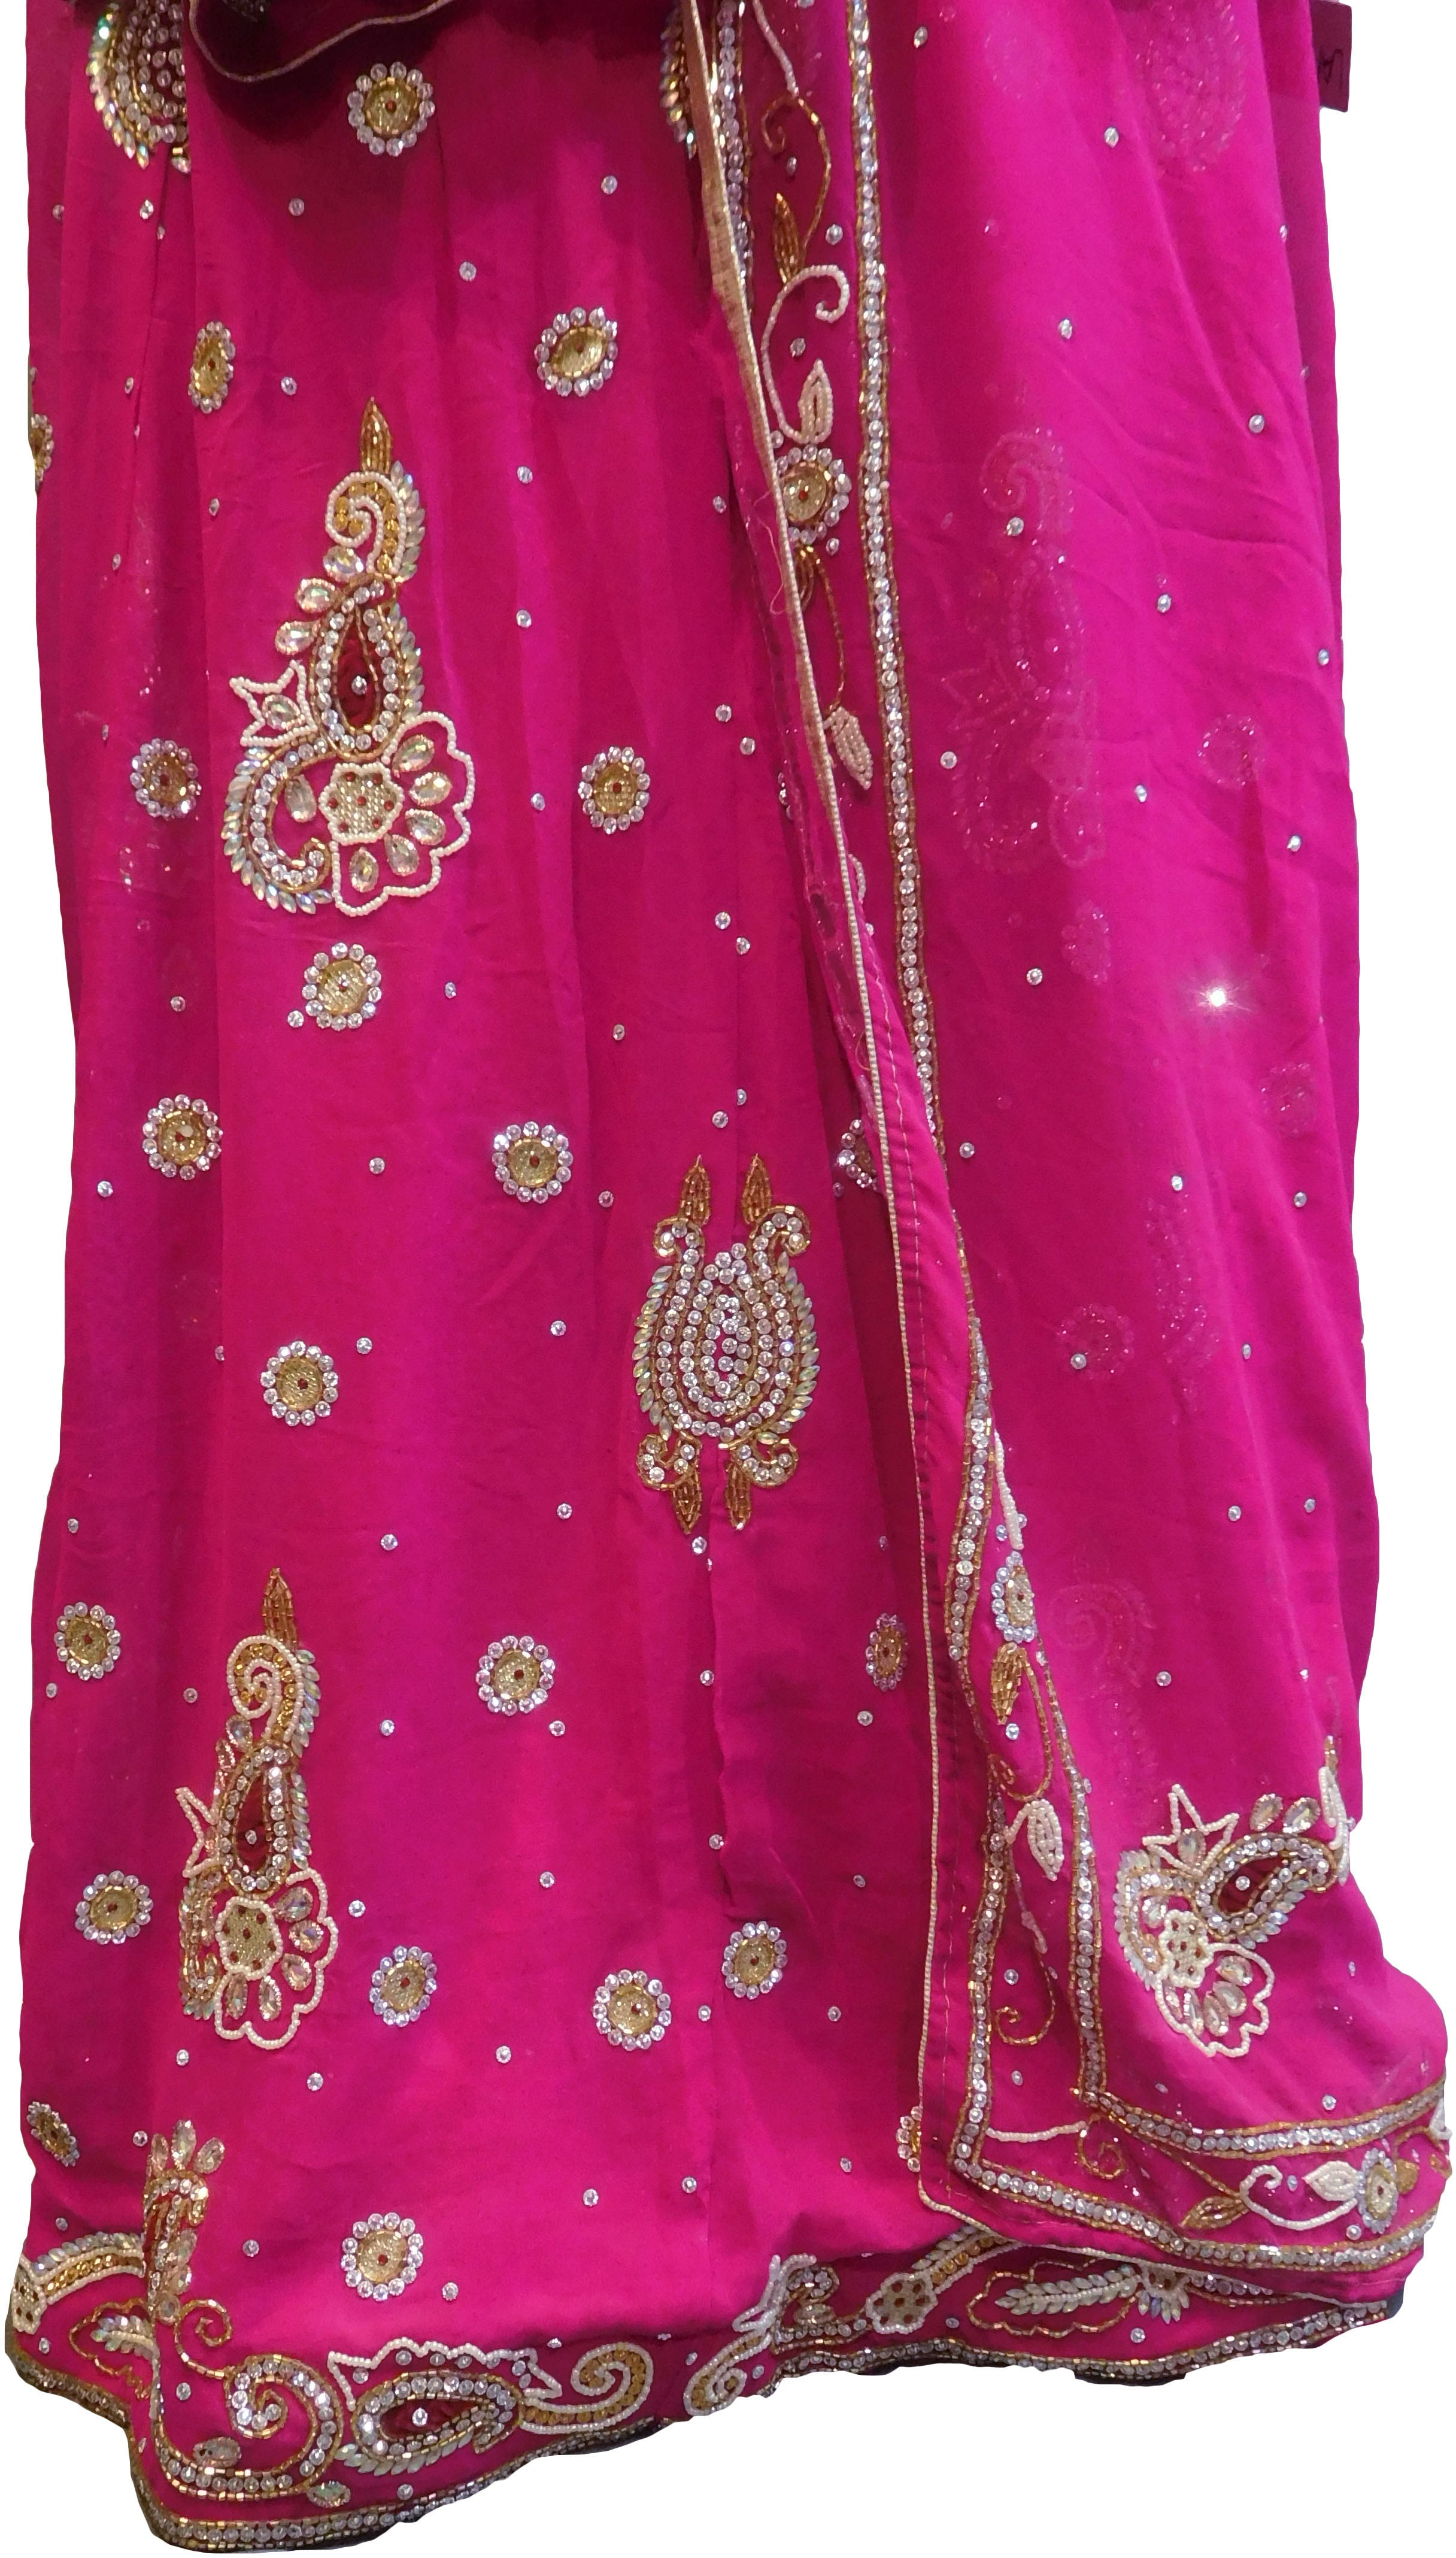 SMSAREE Pink Designer Wedding Partywear Georgette Cutdana Zari Beads & Stone Hand Embroidery Work Bridal Lahenga Dupatta Ghaghra Choli Bari Ki Til With Blouse Piece F109